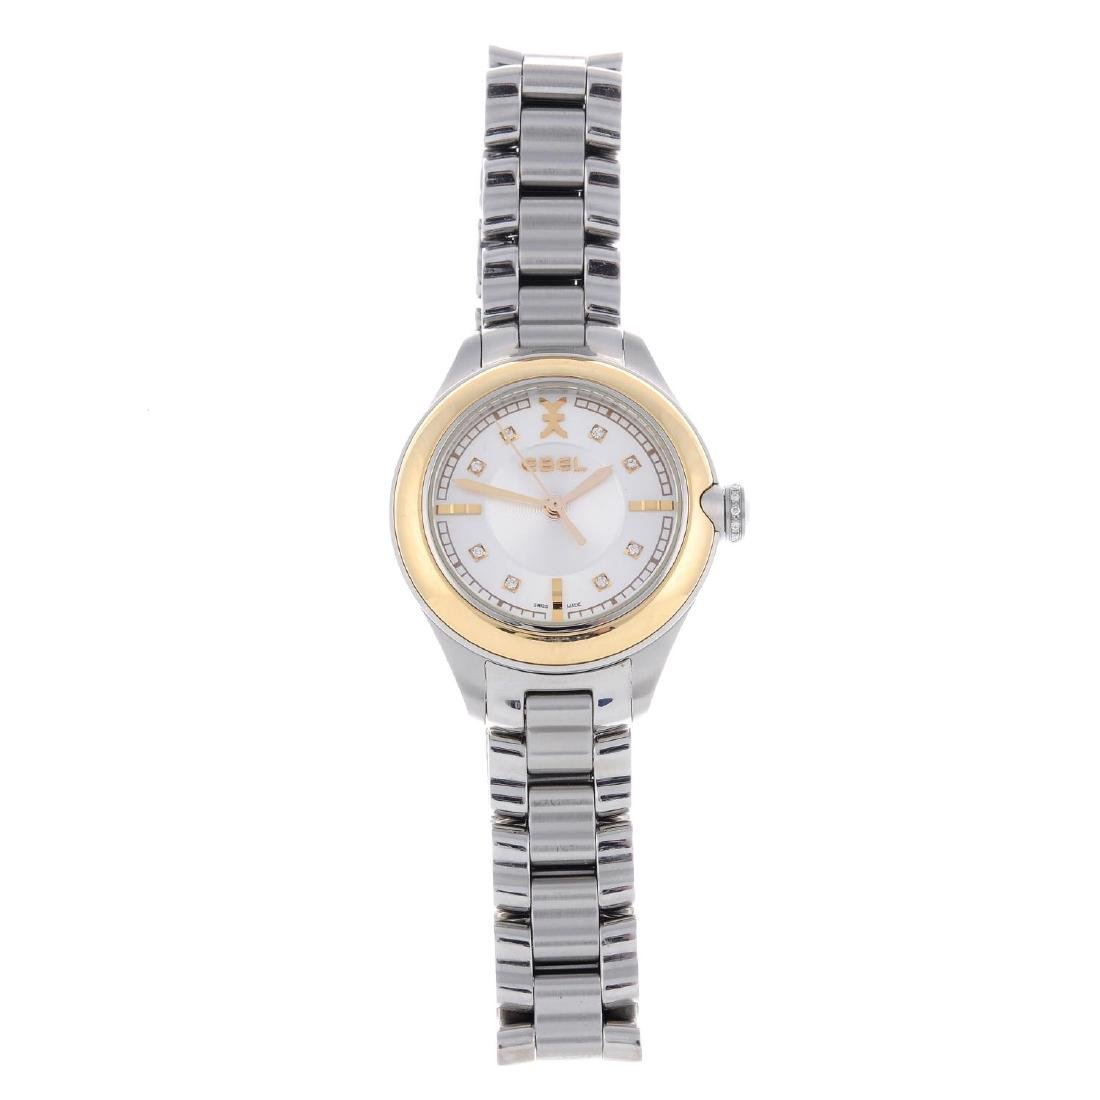 EBEL - a lady's bracelet watch. Stainless steel case